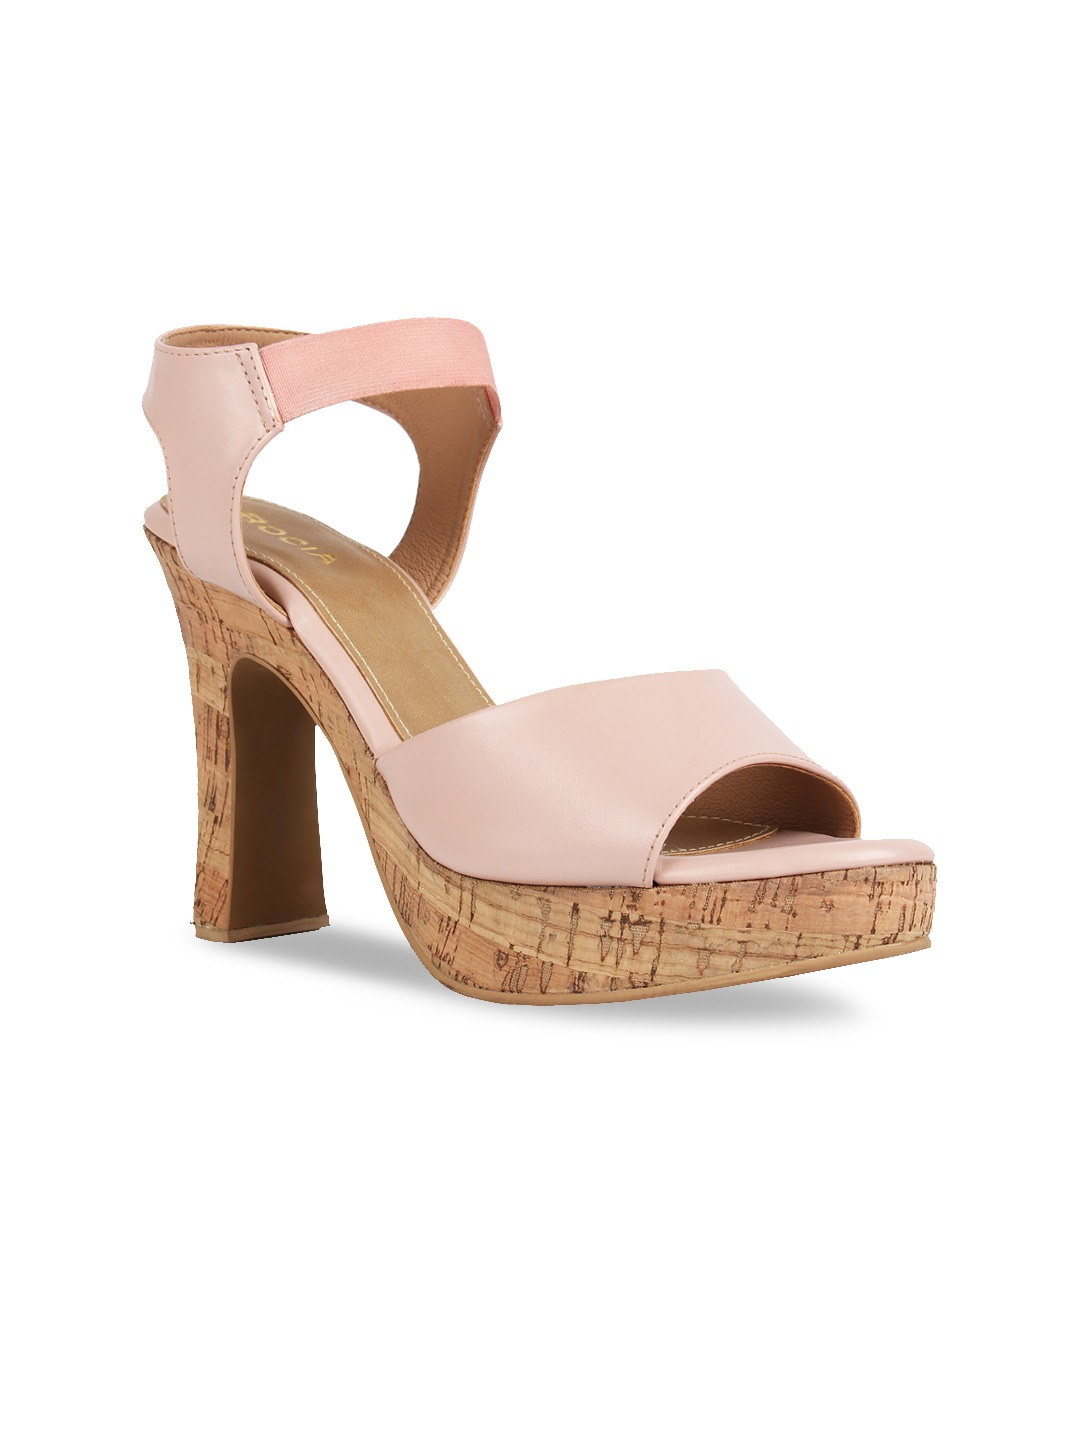 Peach-Coloured Solid Block Heels